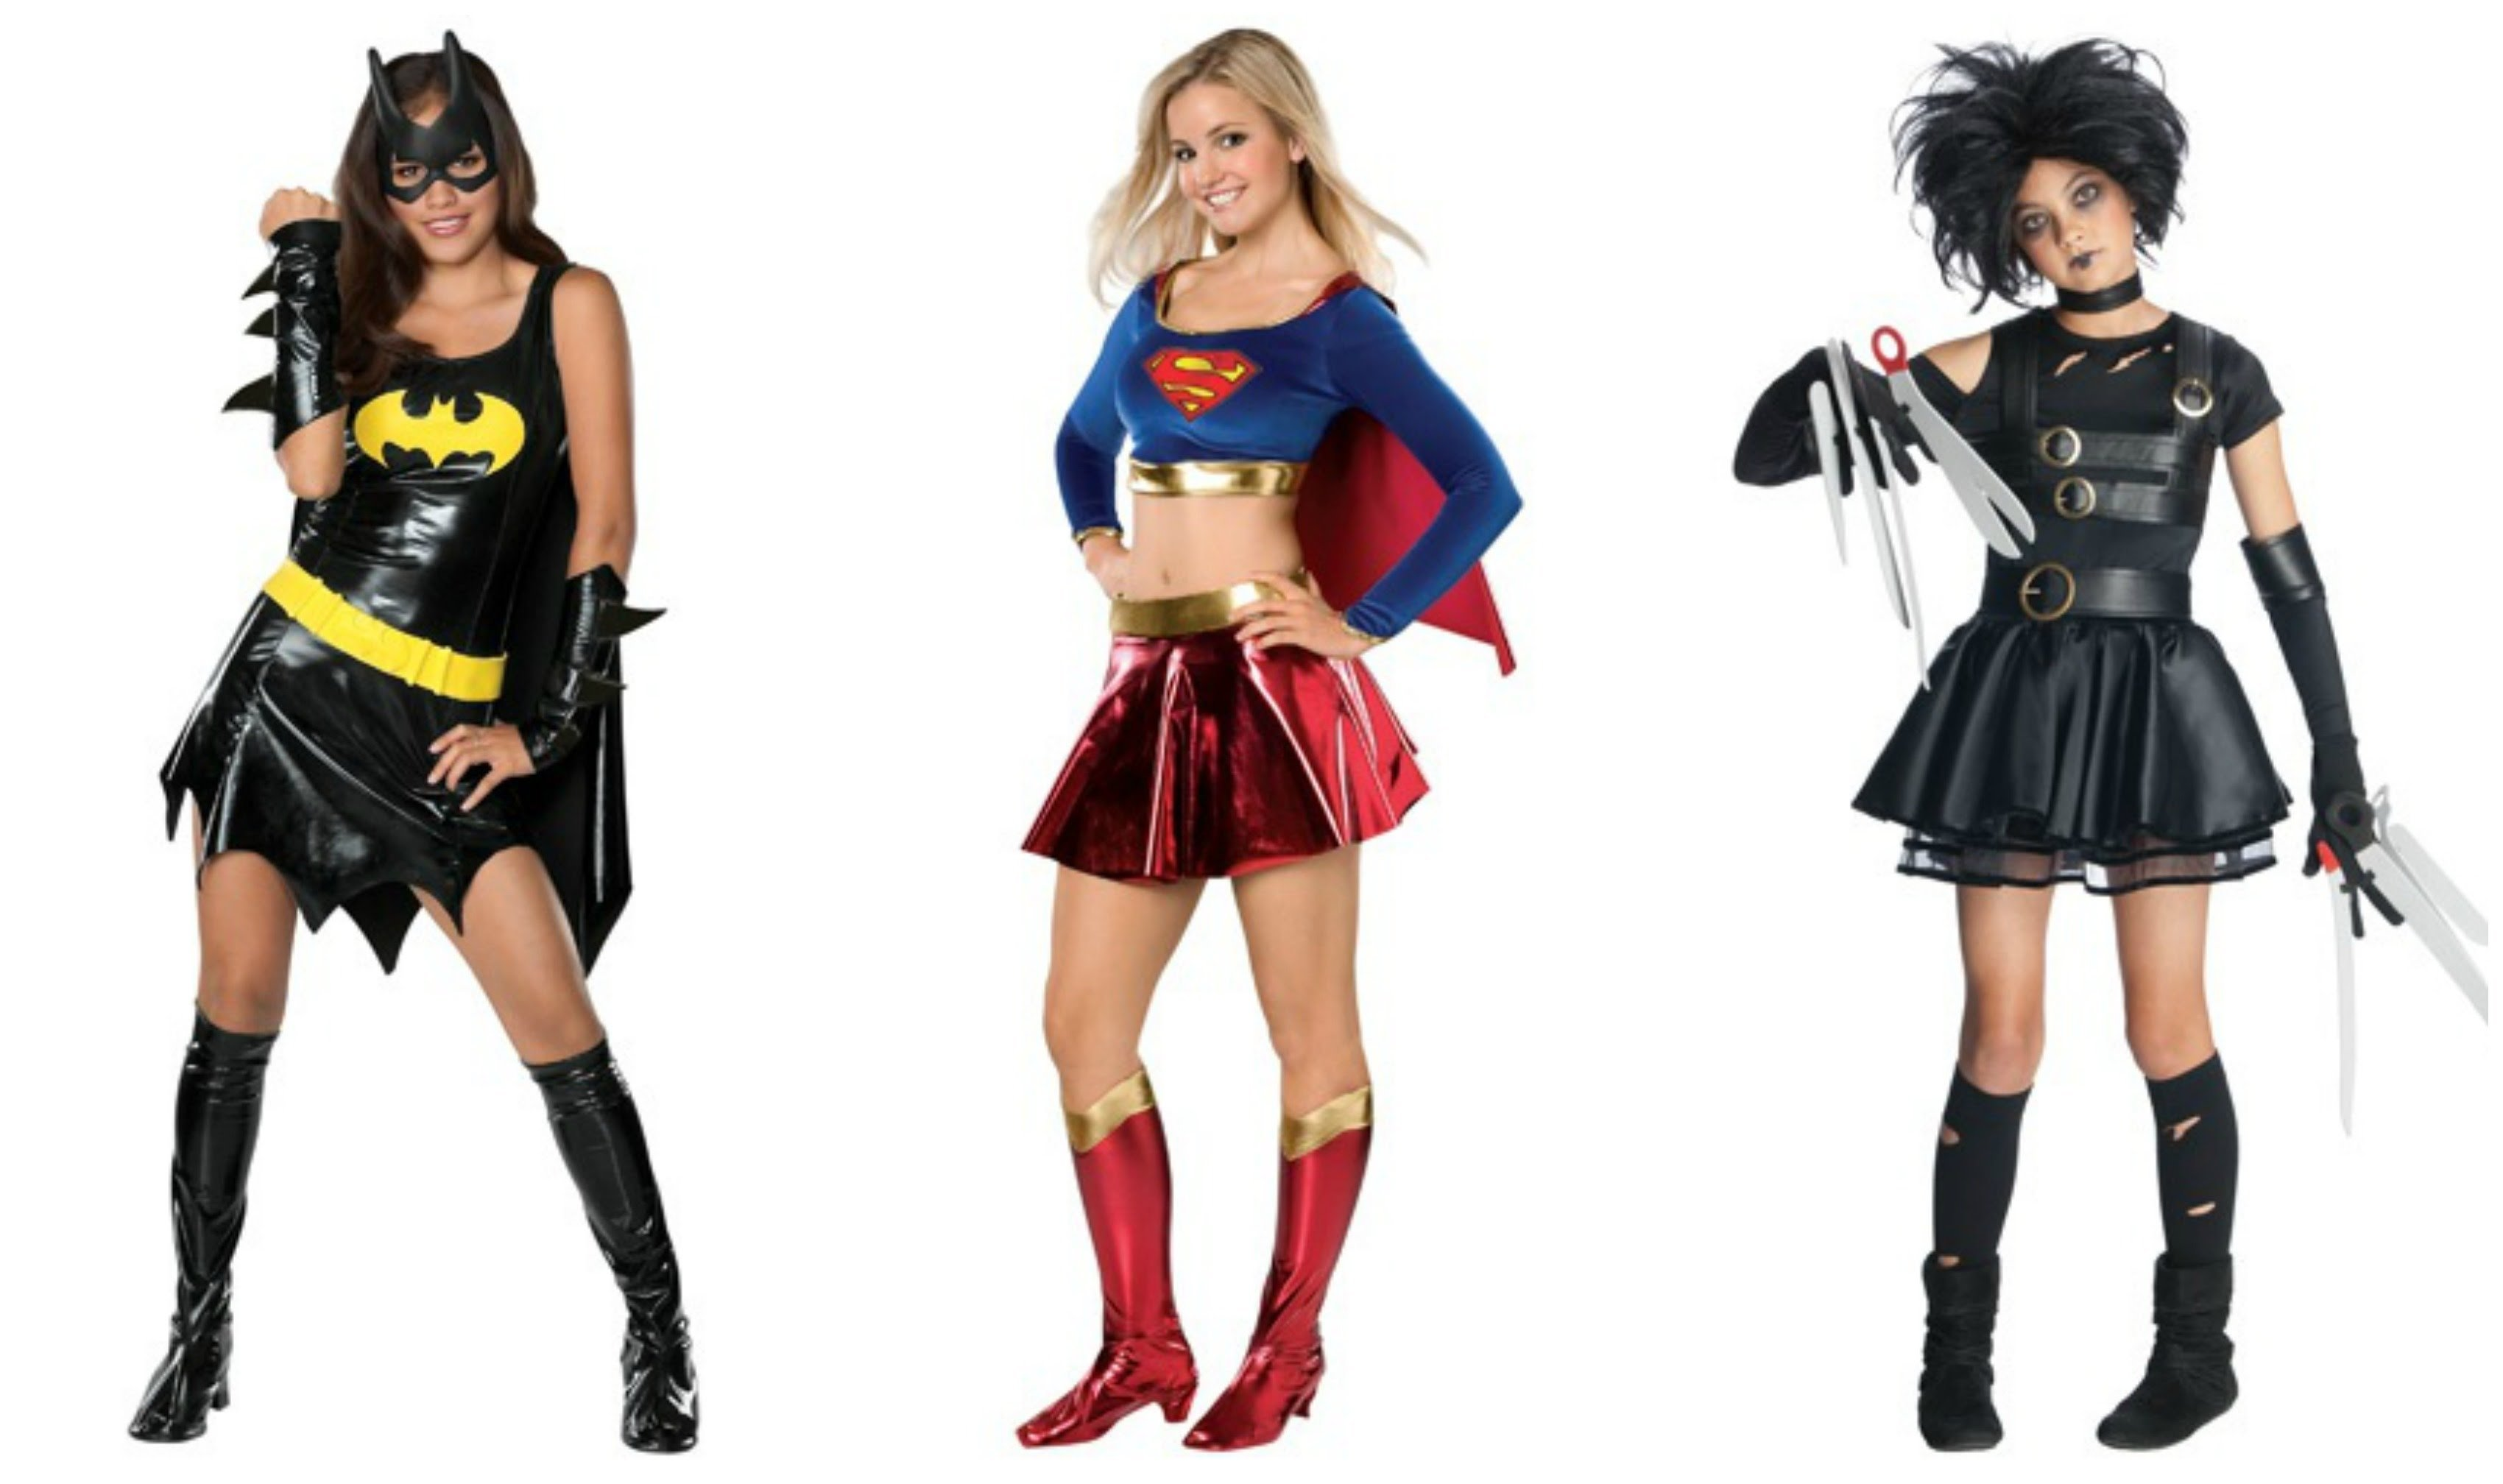 10 Beautiful Cute Costume Ideas For Girls halloween costume ideas for teens girls youtube halloween costumes 9 2020